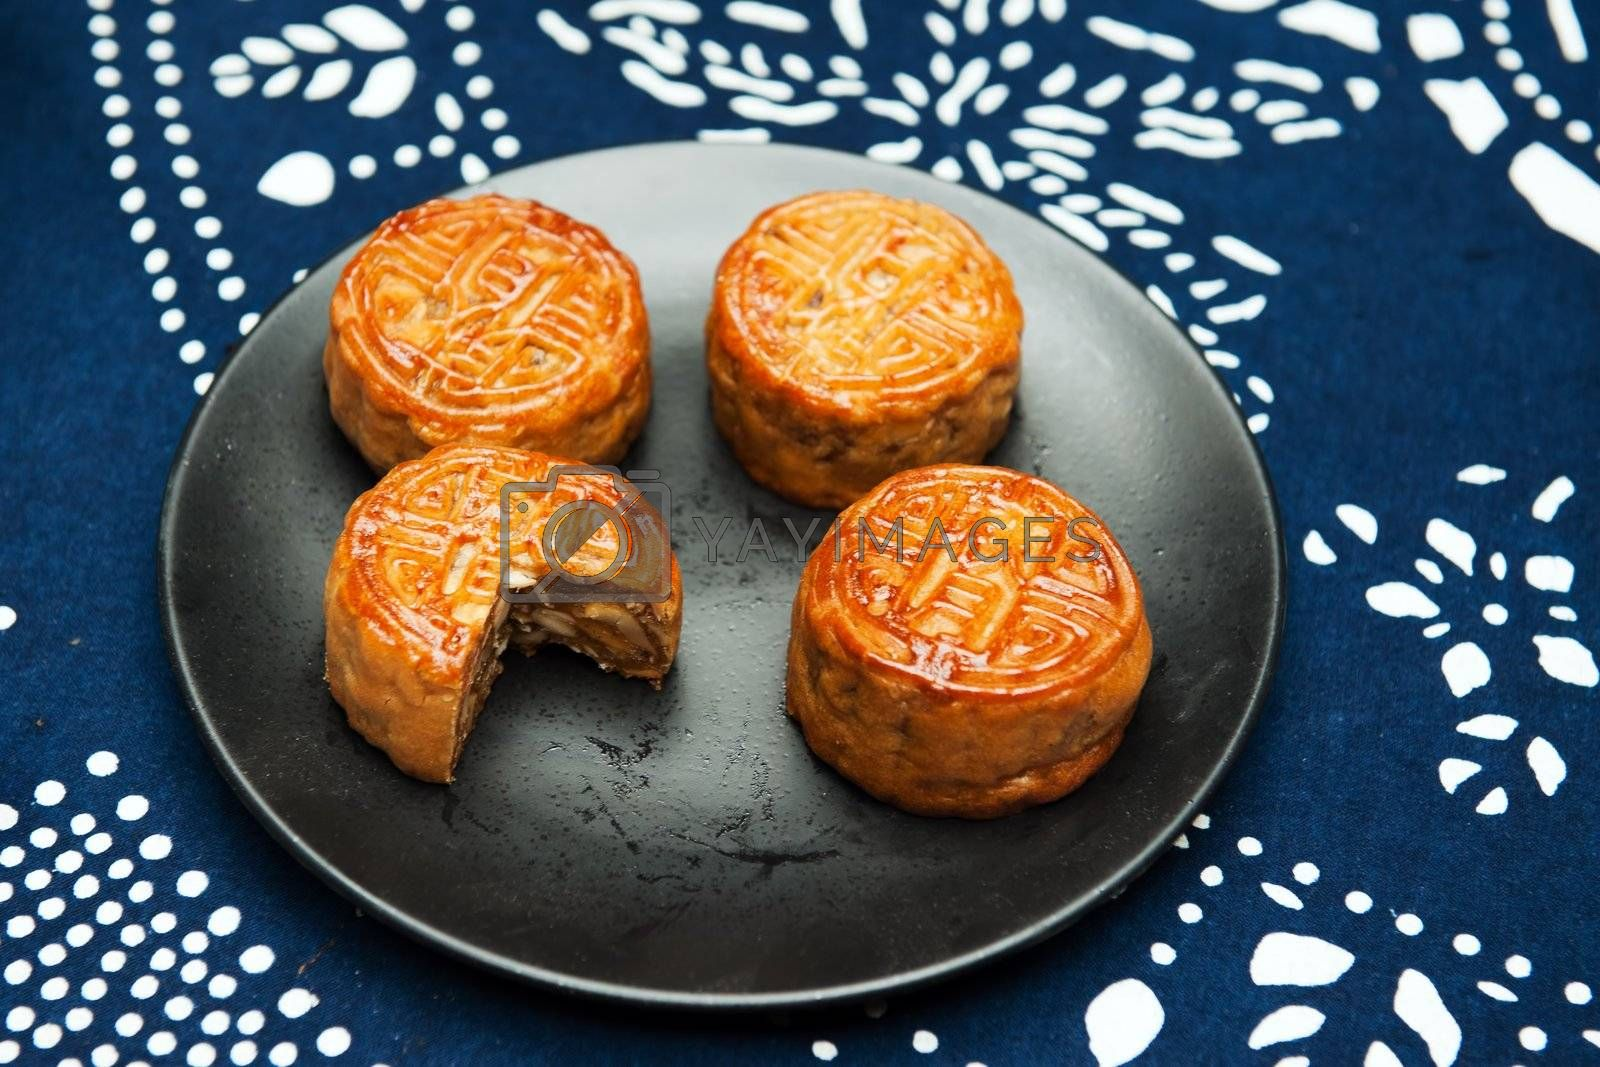 Group of moon cakes on the plate